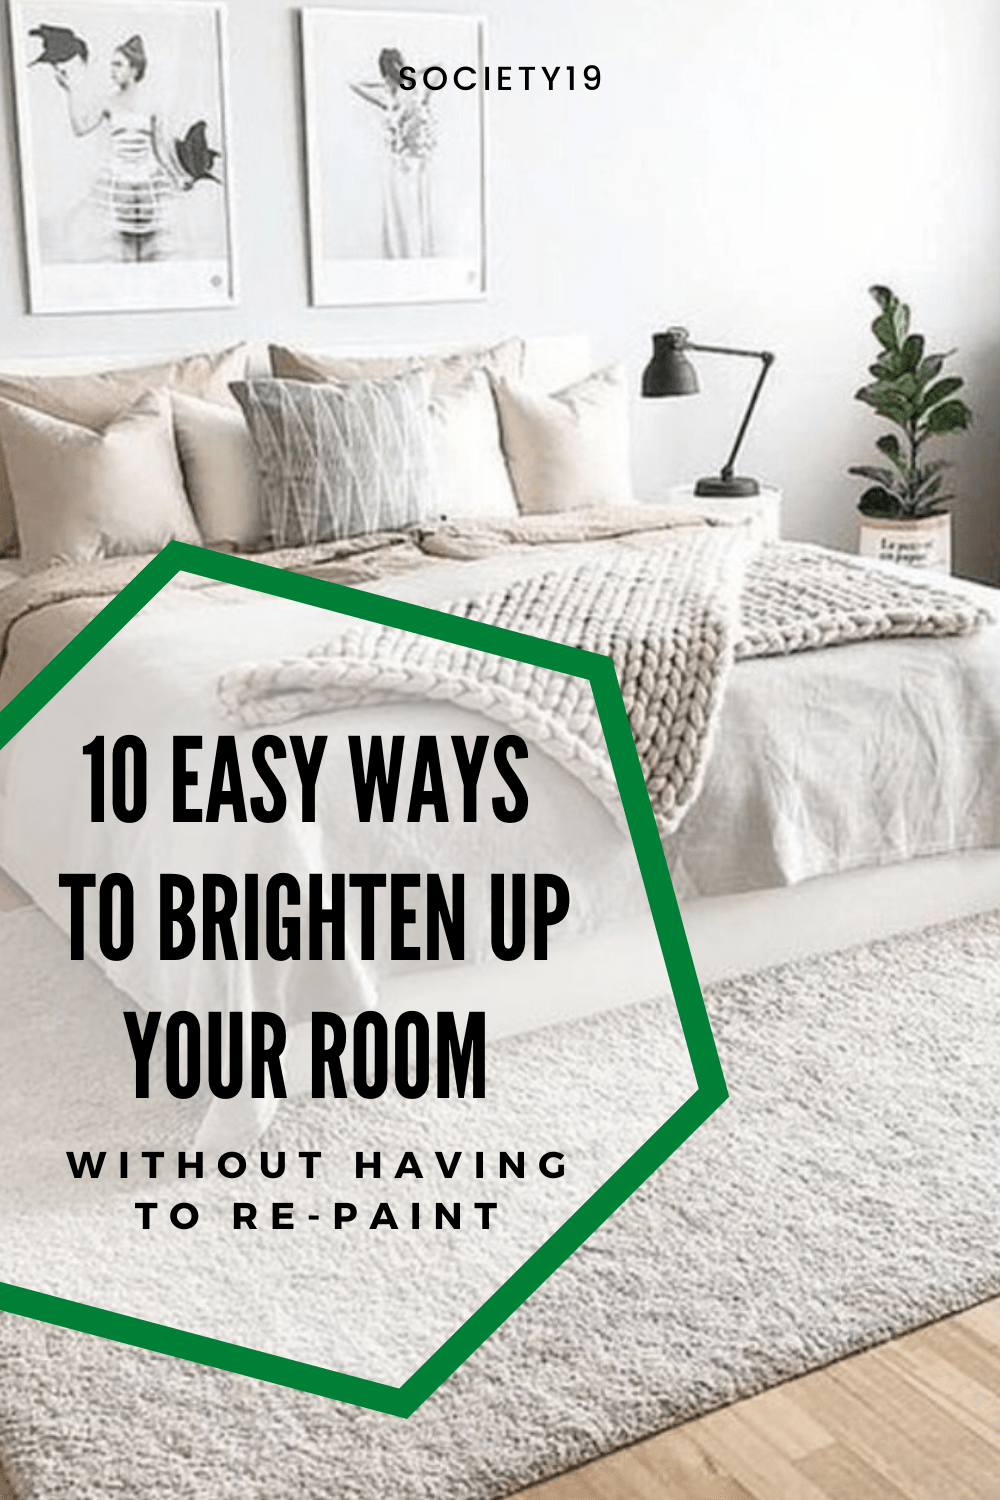 10 Easy Ways To Brighten Up Your Room Without Having To Re-Paint